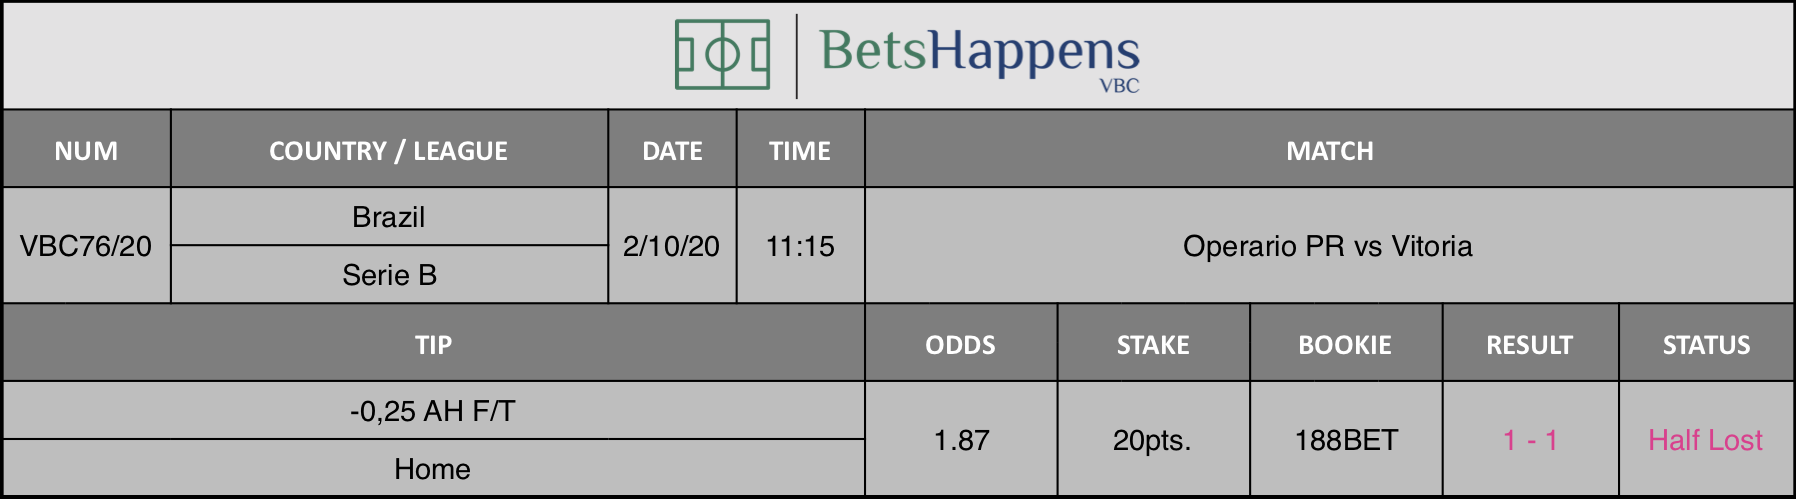 Results of our advice for the Operario PR vs Vitoria match in which -0.25 AH F / T Home is recommended.